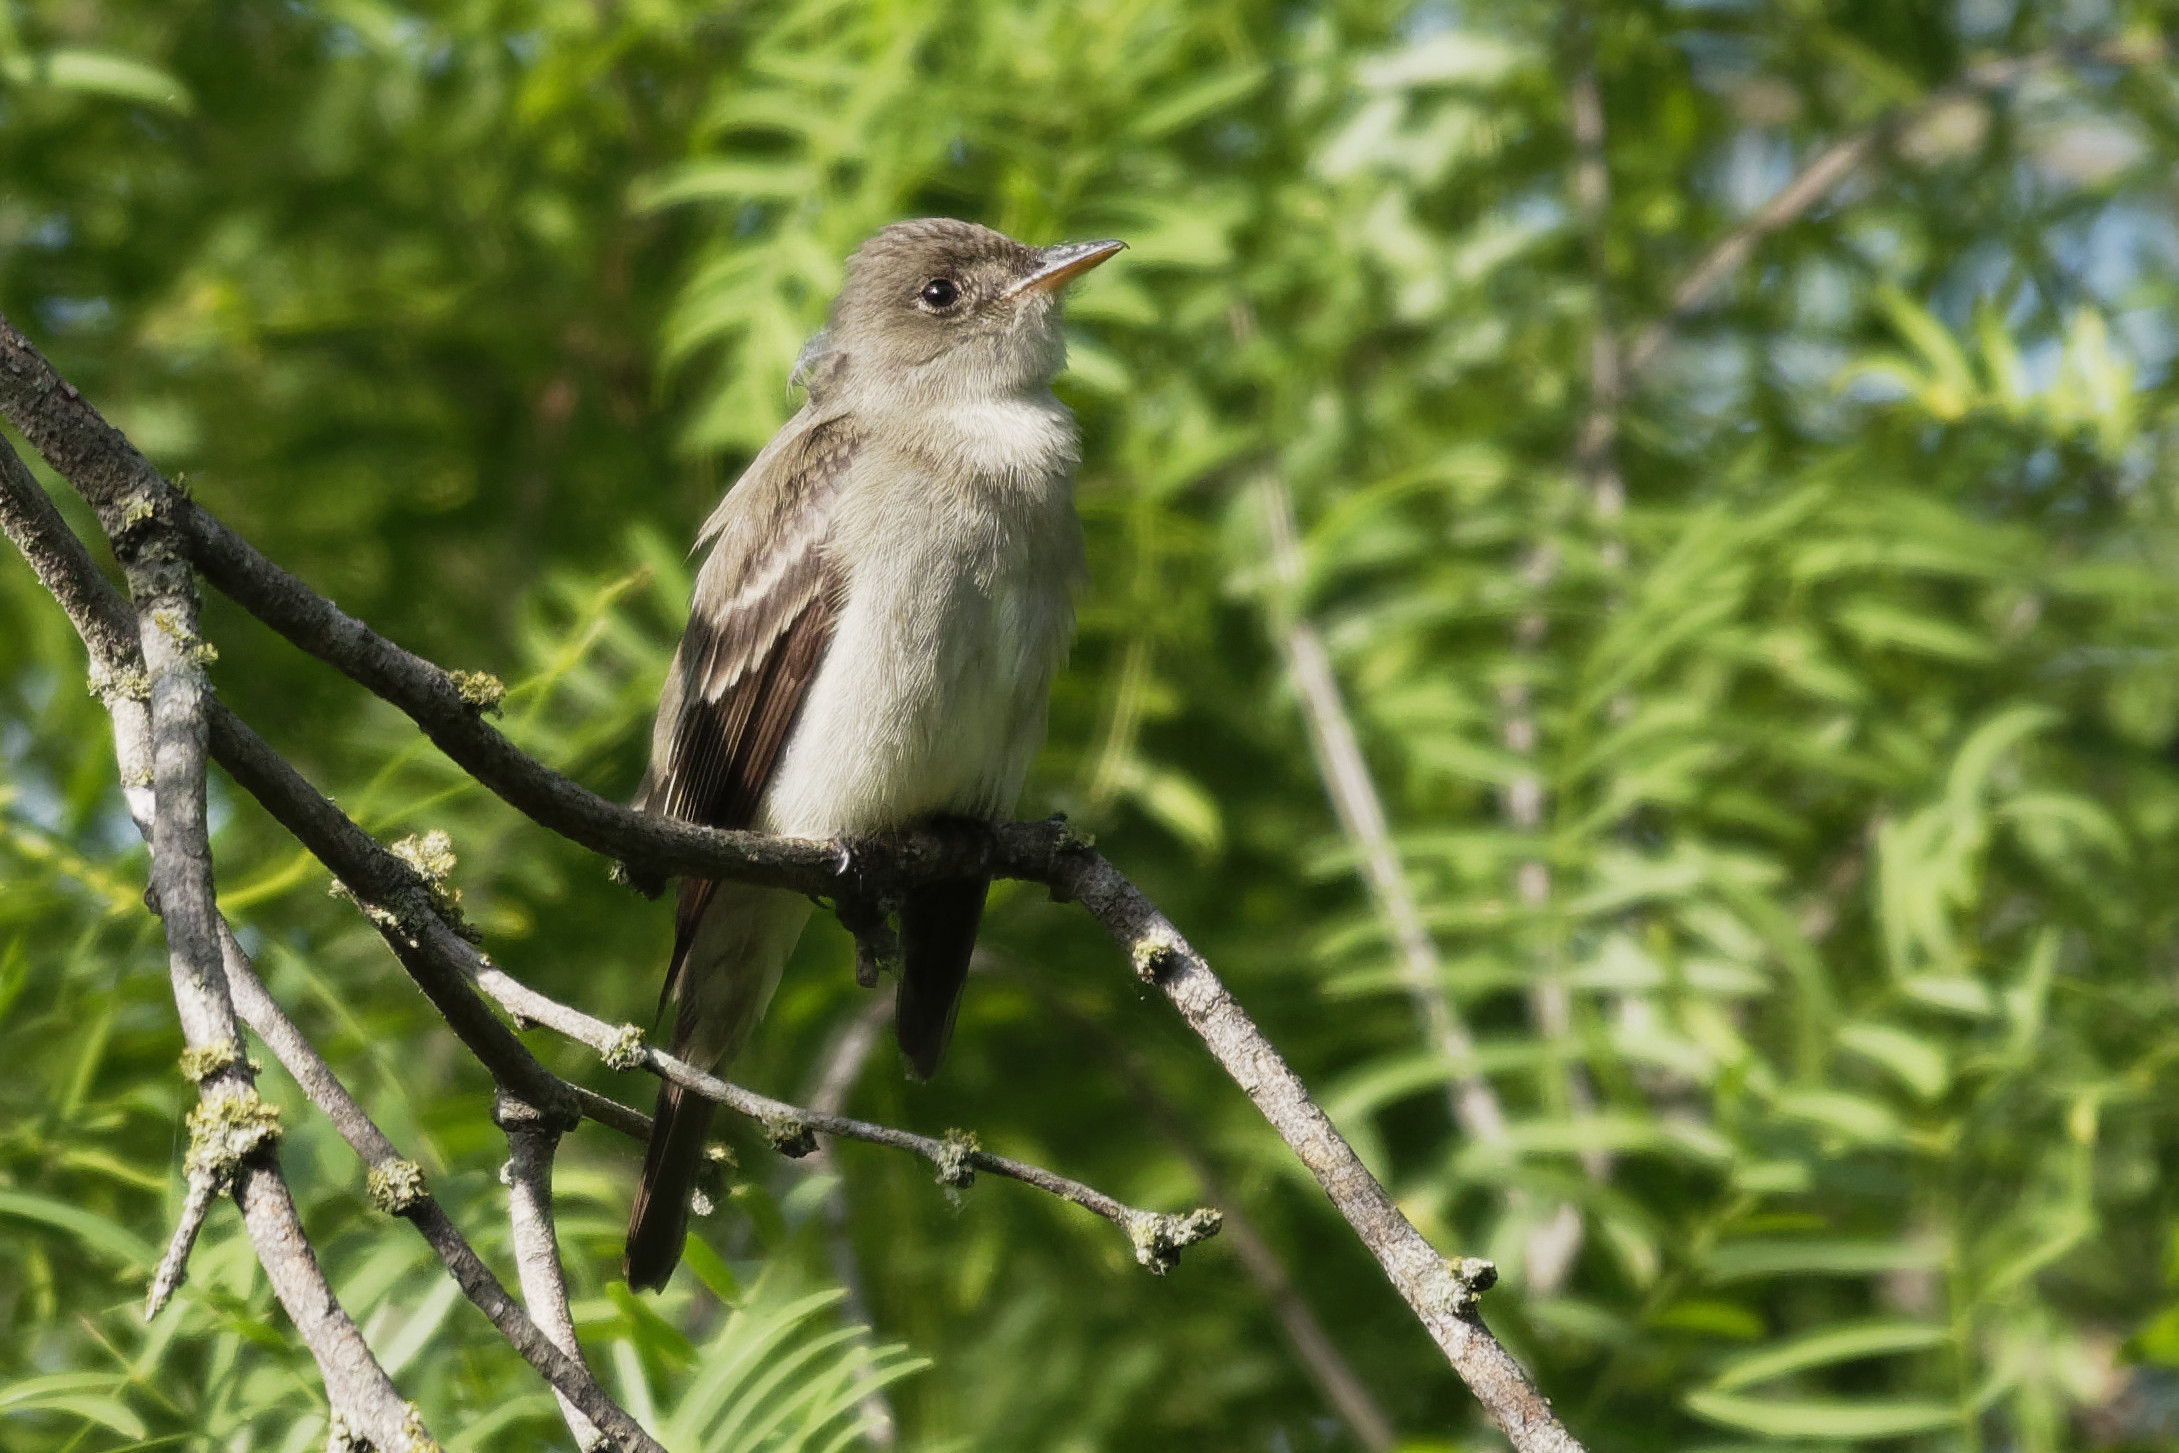 Species: Eastern Wood-Pewee Photo Credit: Dina Perry Date: May 2019 Location: Mitchell Lake Audubon Center